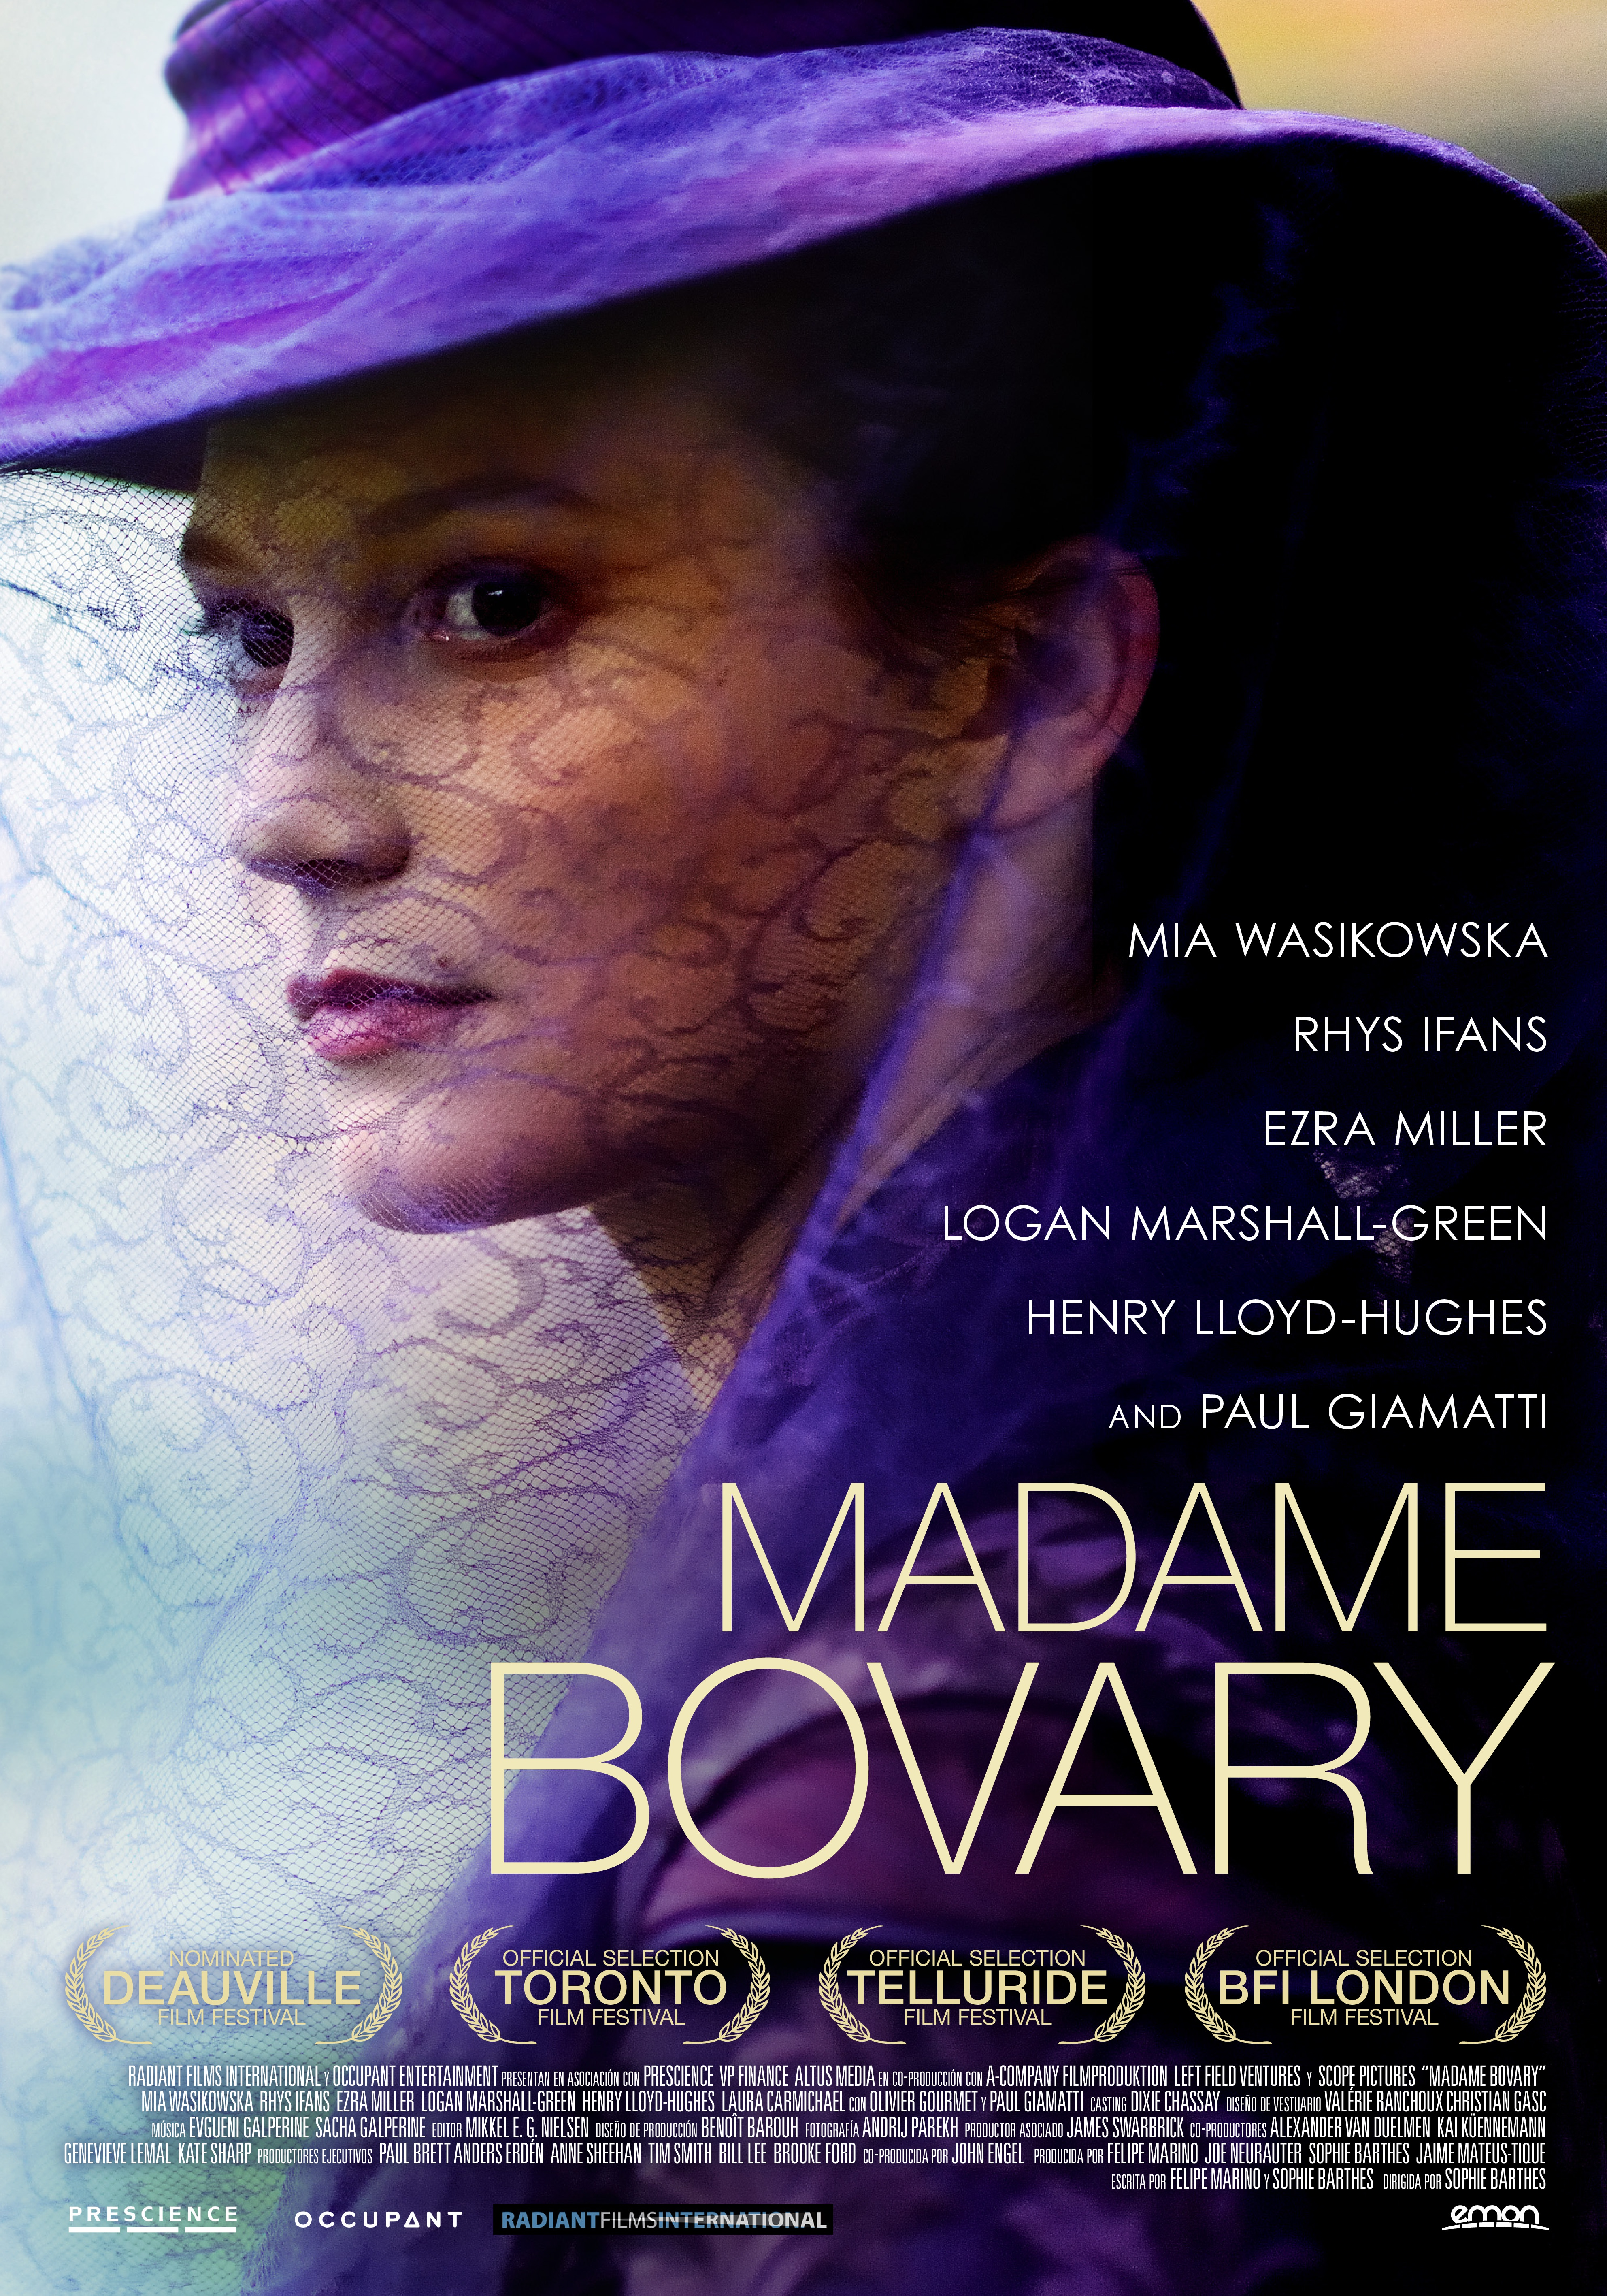 Madame-Bovary_POSTER_HiRes_3MB-001